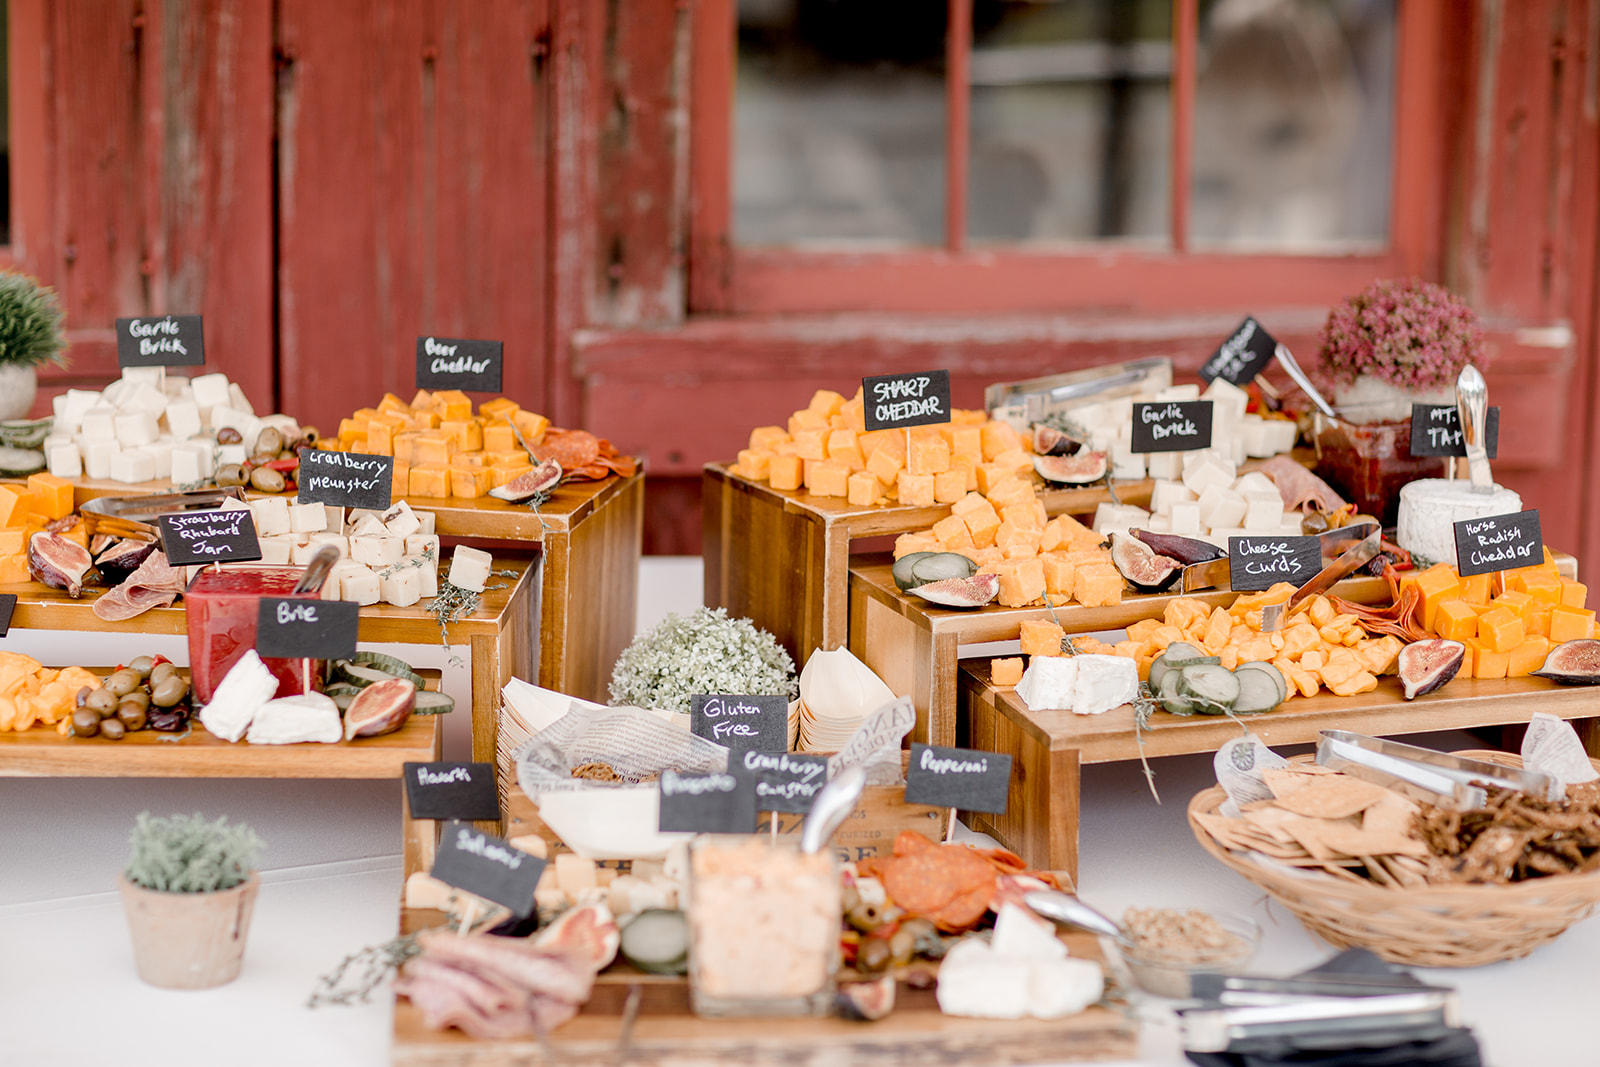 catering-spread-at-barn-wedding.jpg